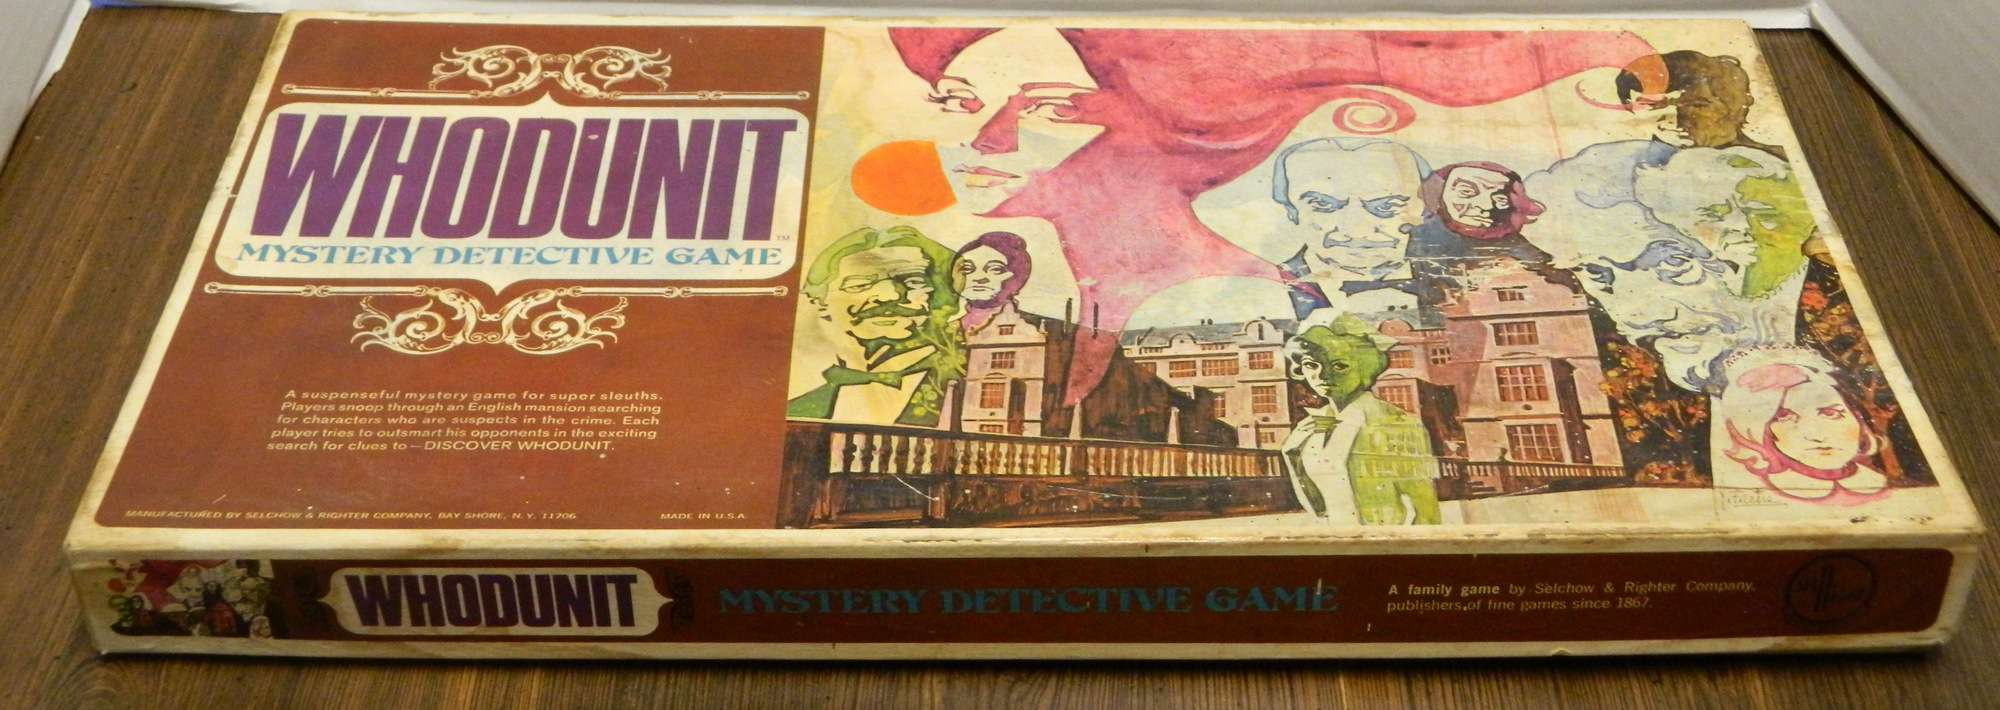 Whodunit Mystery Detective Game (1972) Review and